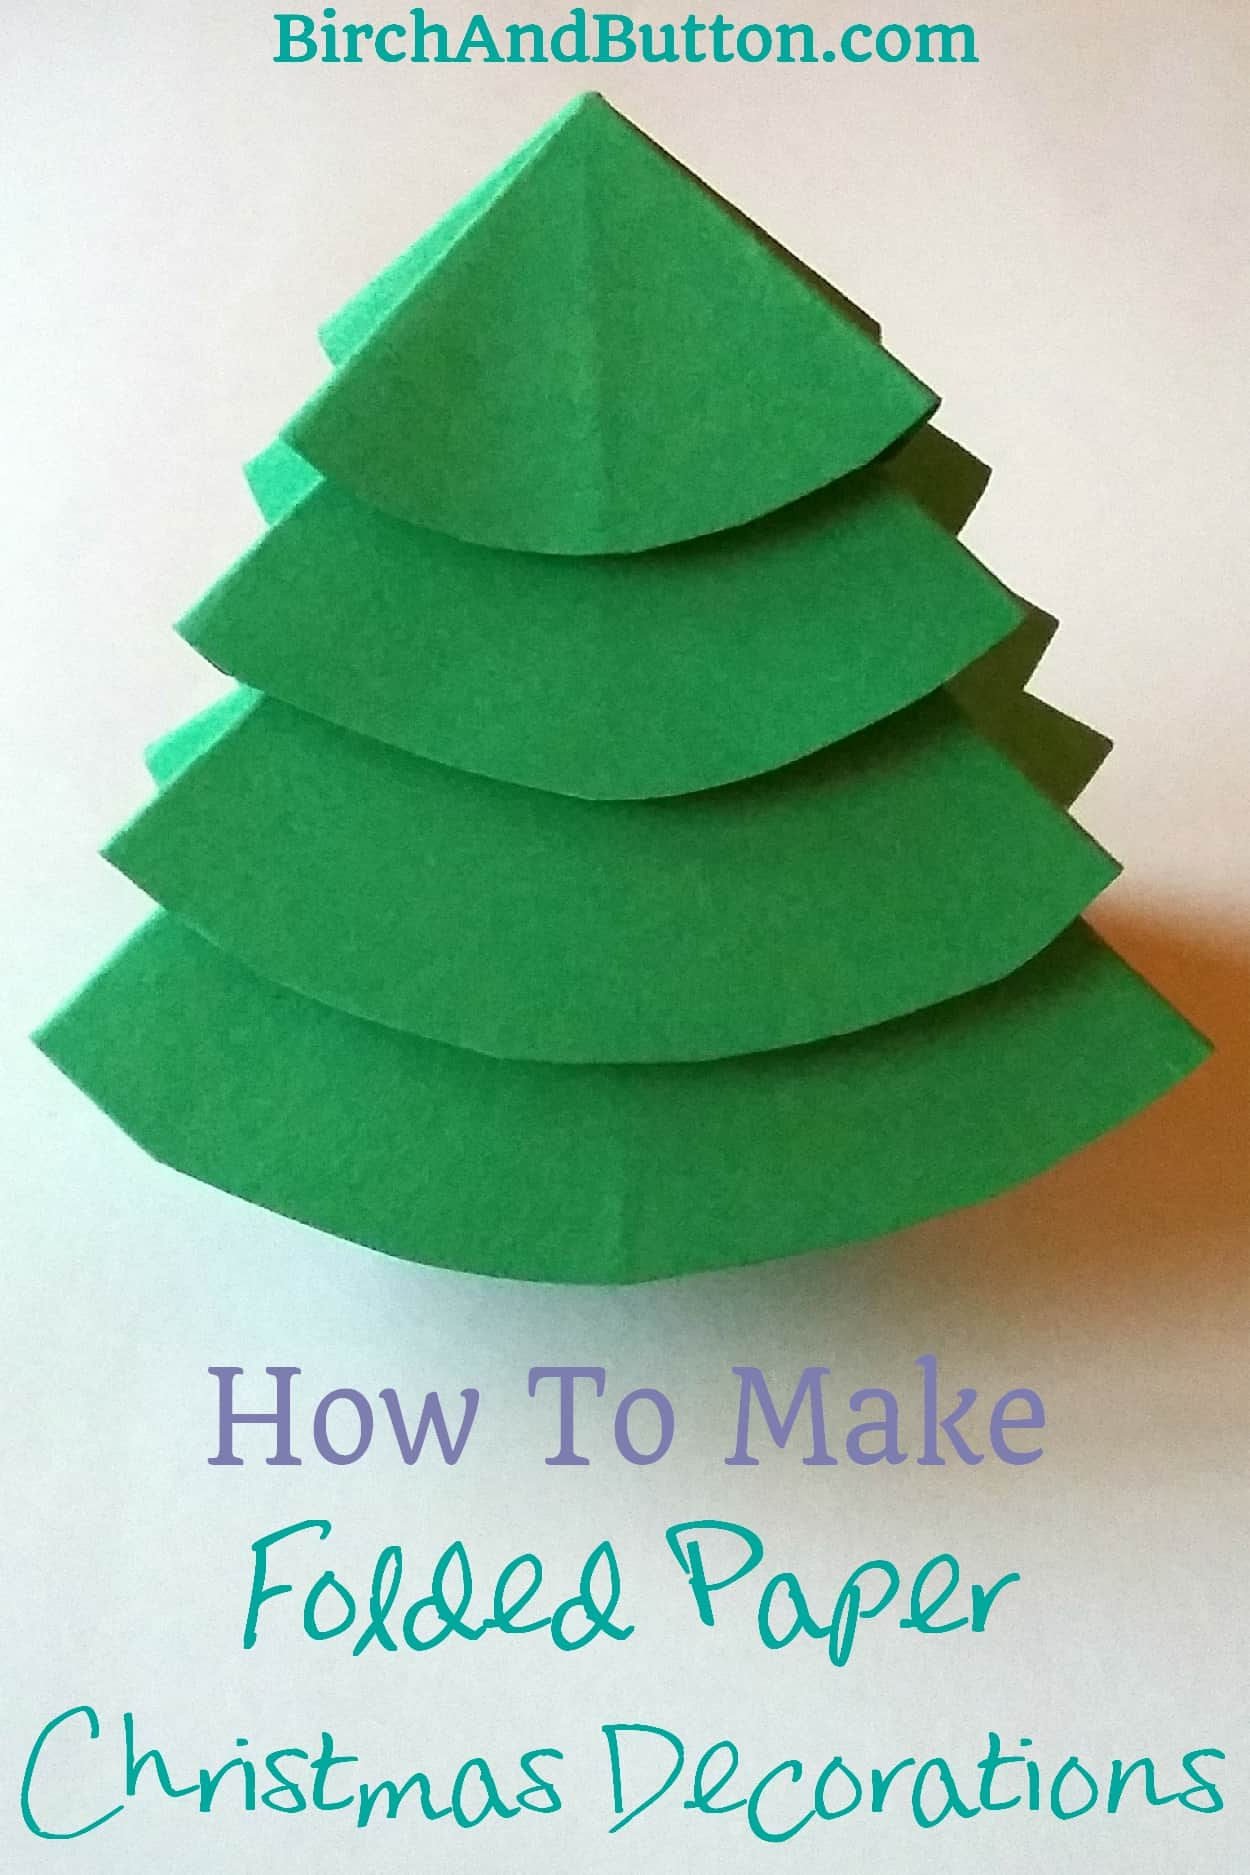 Learn to make a folded paper Christmas tree and an origami star -- simple, quick and effective decorations for Christmas!